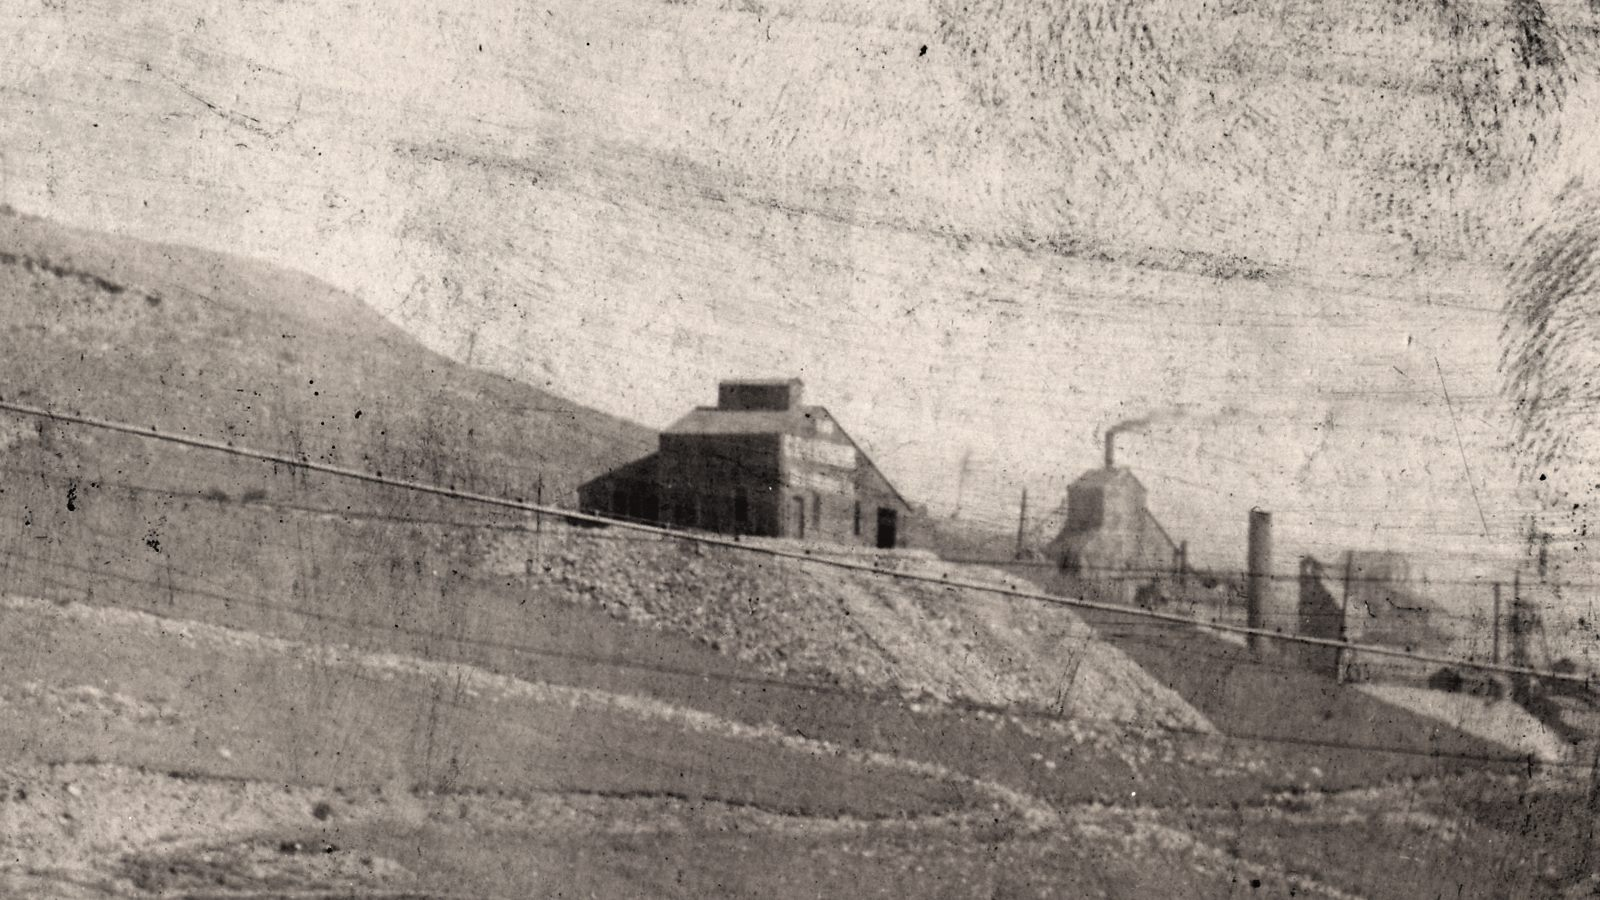 This badly looking image is the best I have of this mine, the Shaft House of the Chesapeake Mine as it was seen in the background of a photograph of a troop of Soldiers, possible the Denver City Troop, as they posed at Camp Goldfield sometimes around 1903. The Mine is in the center of the view and was located on Battle Mountain below the point where the Golden Circle crosses over the Midland Terminal tracks to work itself up passed the Portland Mine, and just outside the bottom part the tents of Camp Goldfield start showing up.